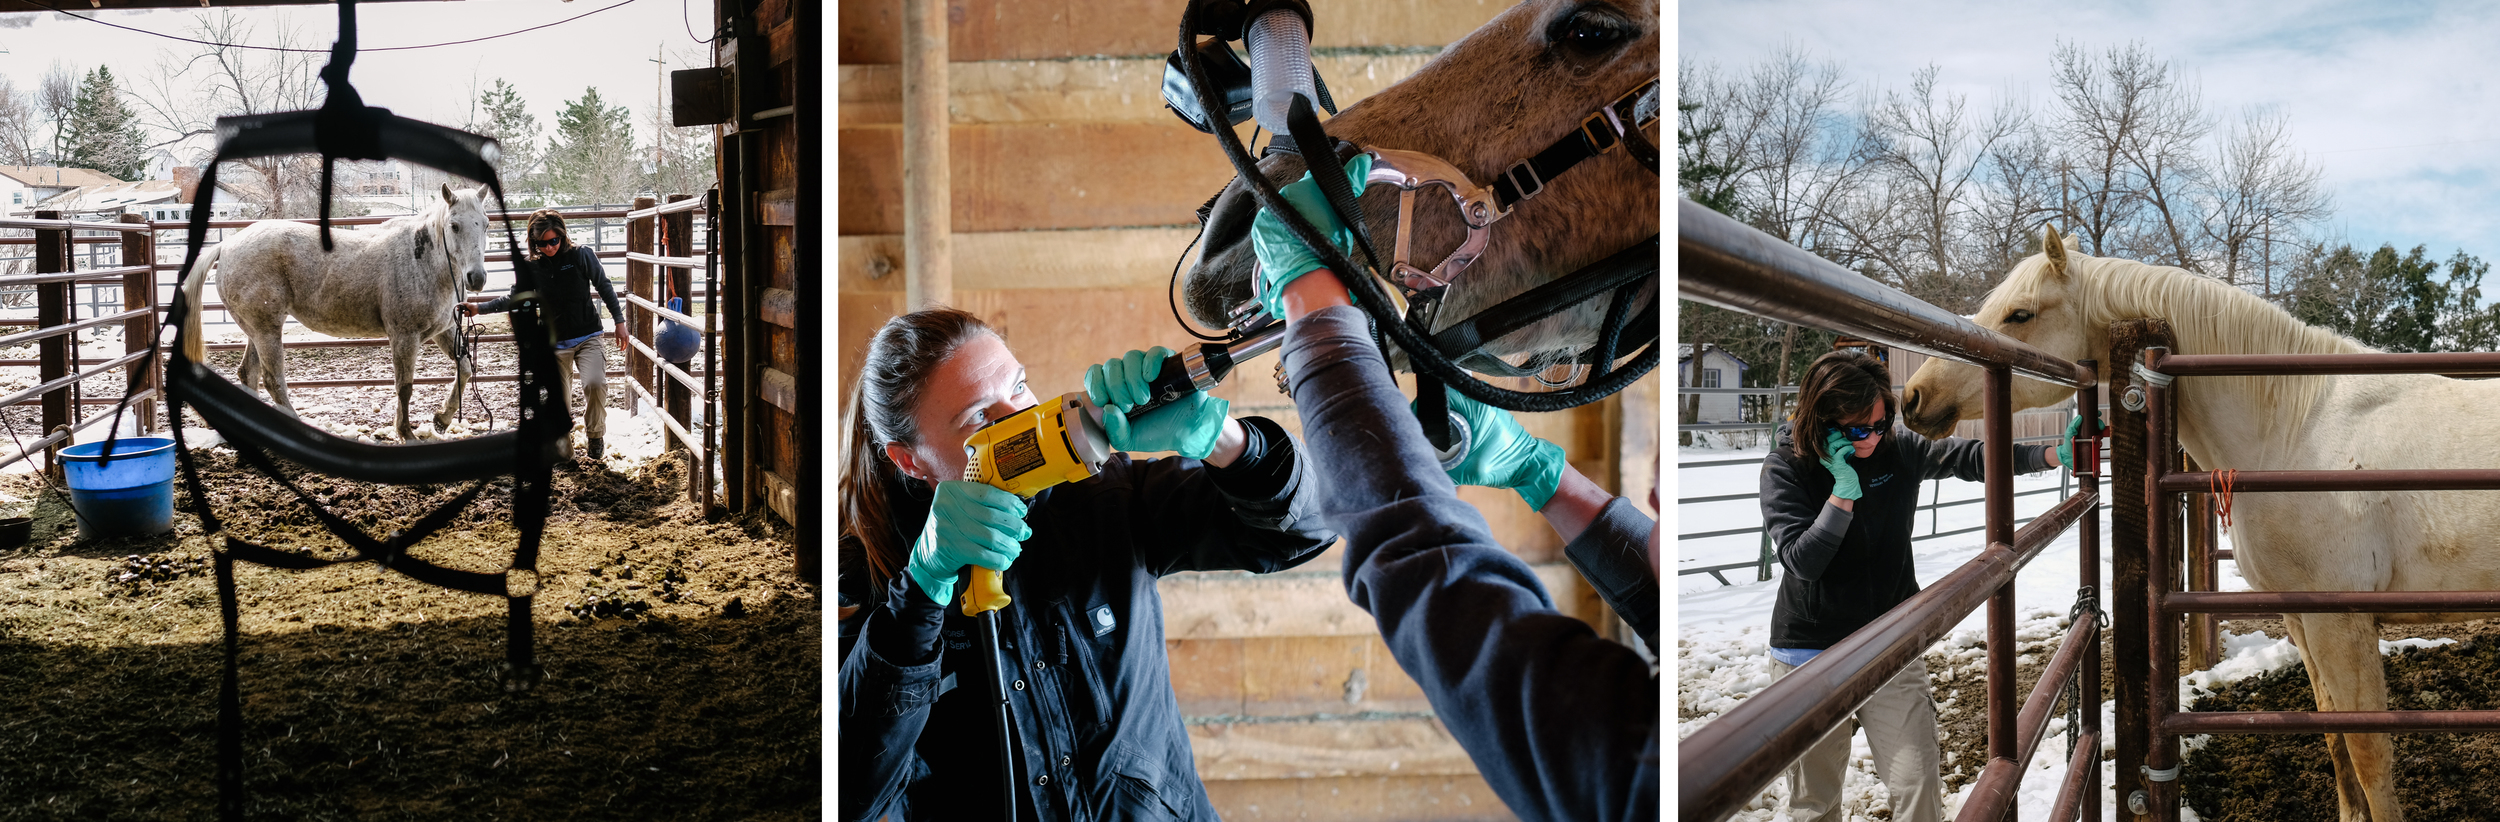 Dr. Hoke and her assistant, Courtney, work in a client's backyard horse shelter during an equine dental procedure.